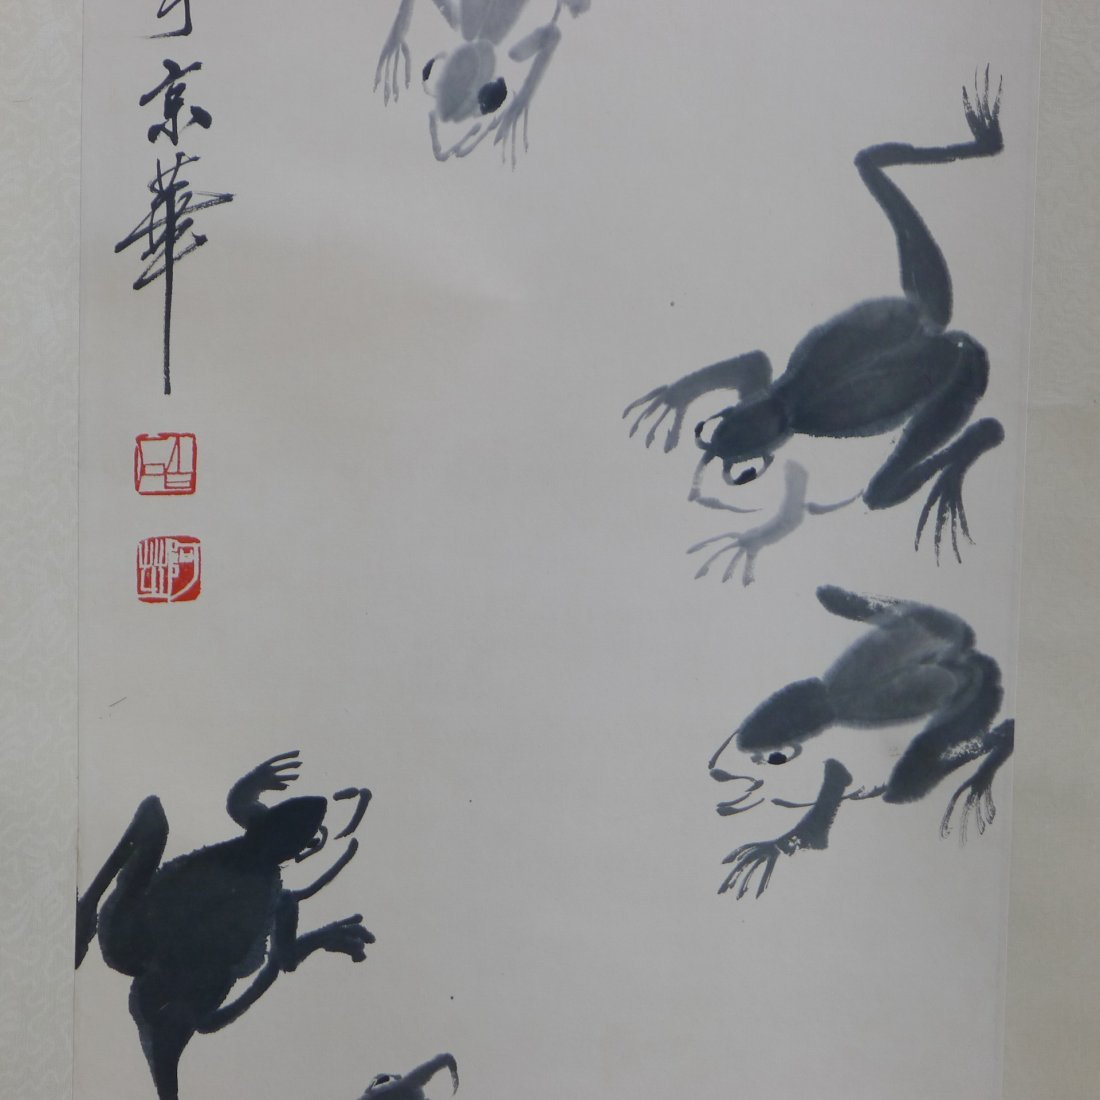 CHINESE PAINTING BY QI BAISHI